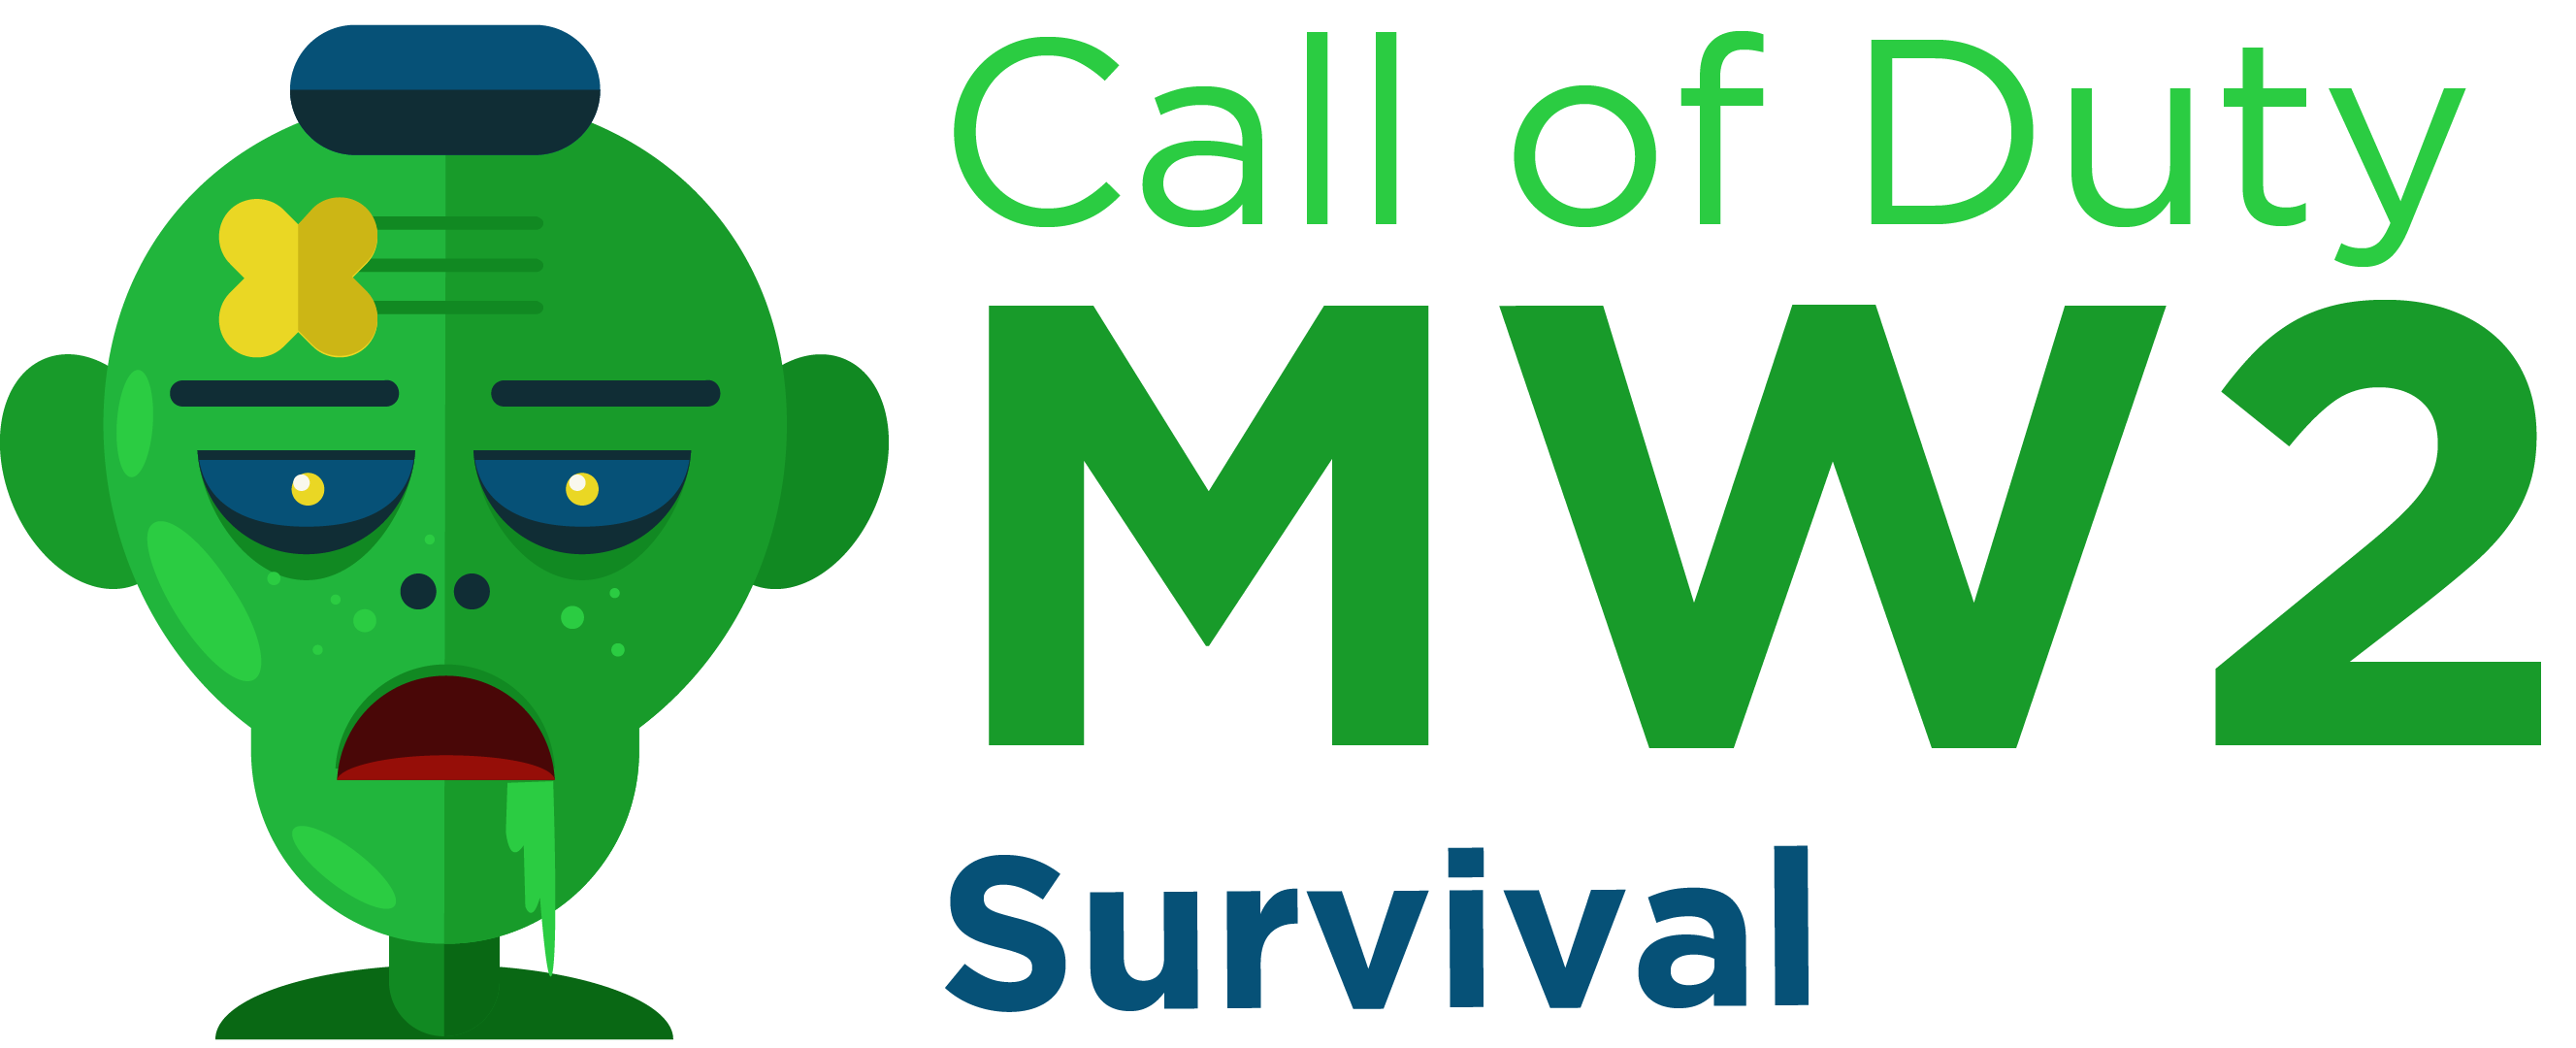 Call of Duty Mw2 Survival Mod Logo by P!X